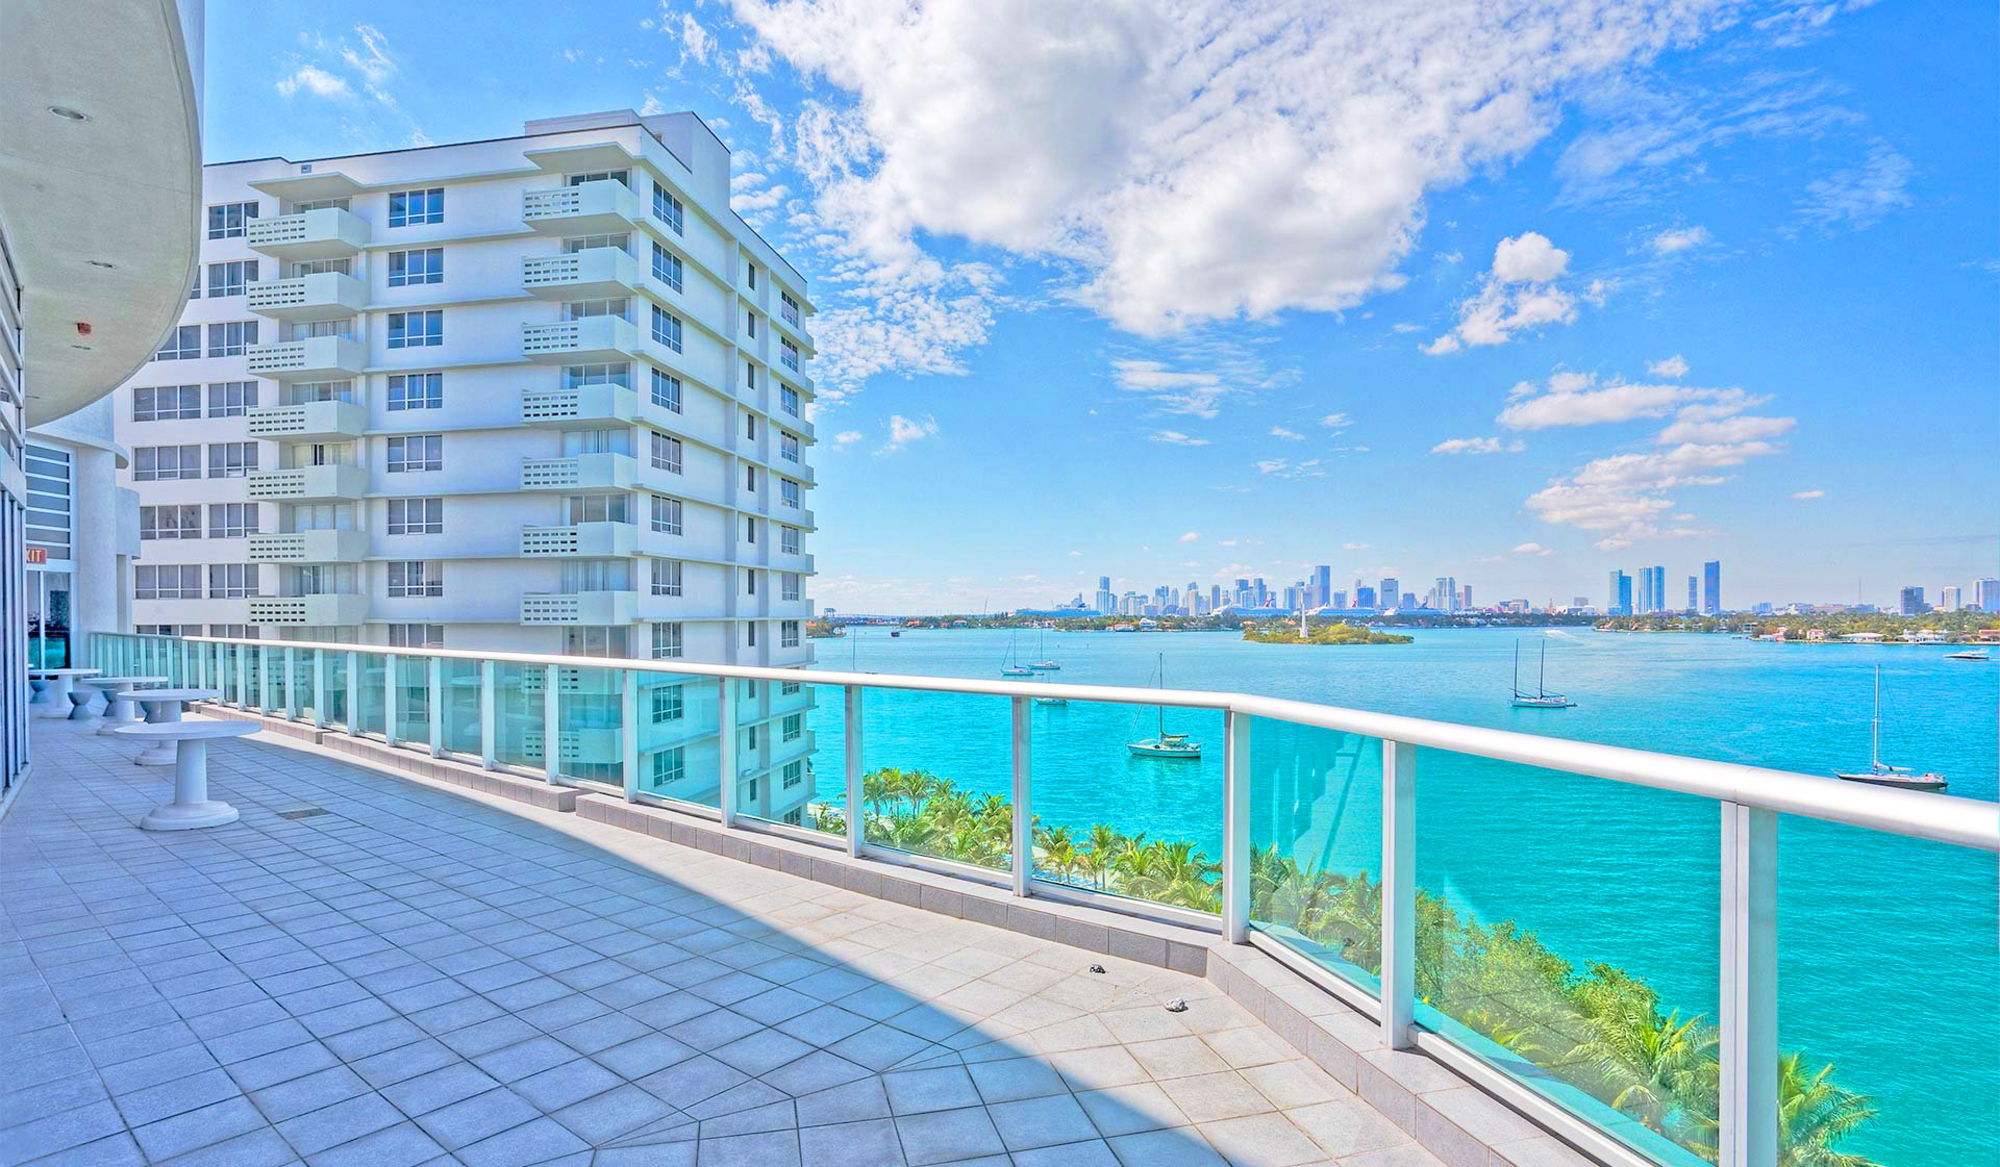 2 Bedroom Homes in Miami Beach by TMG